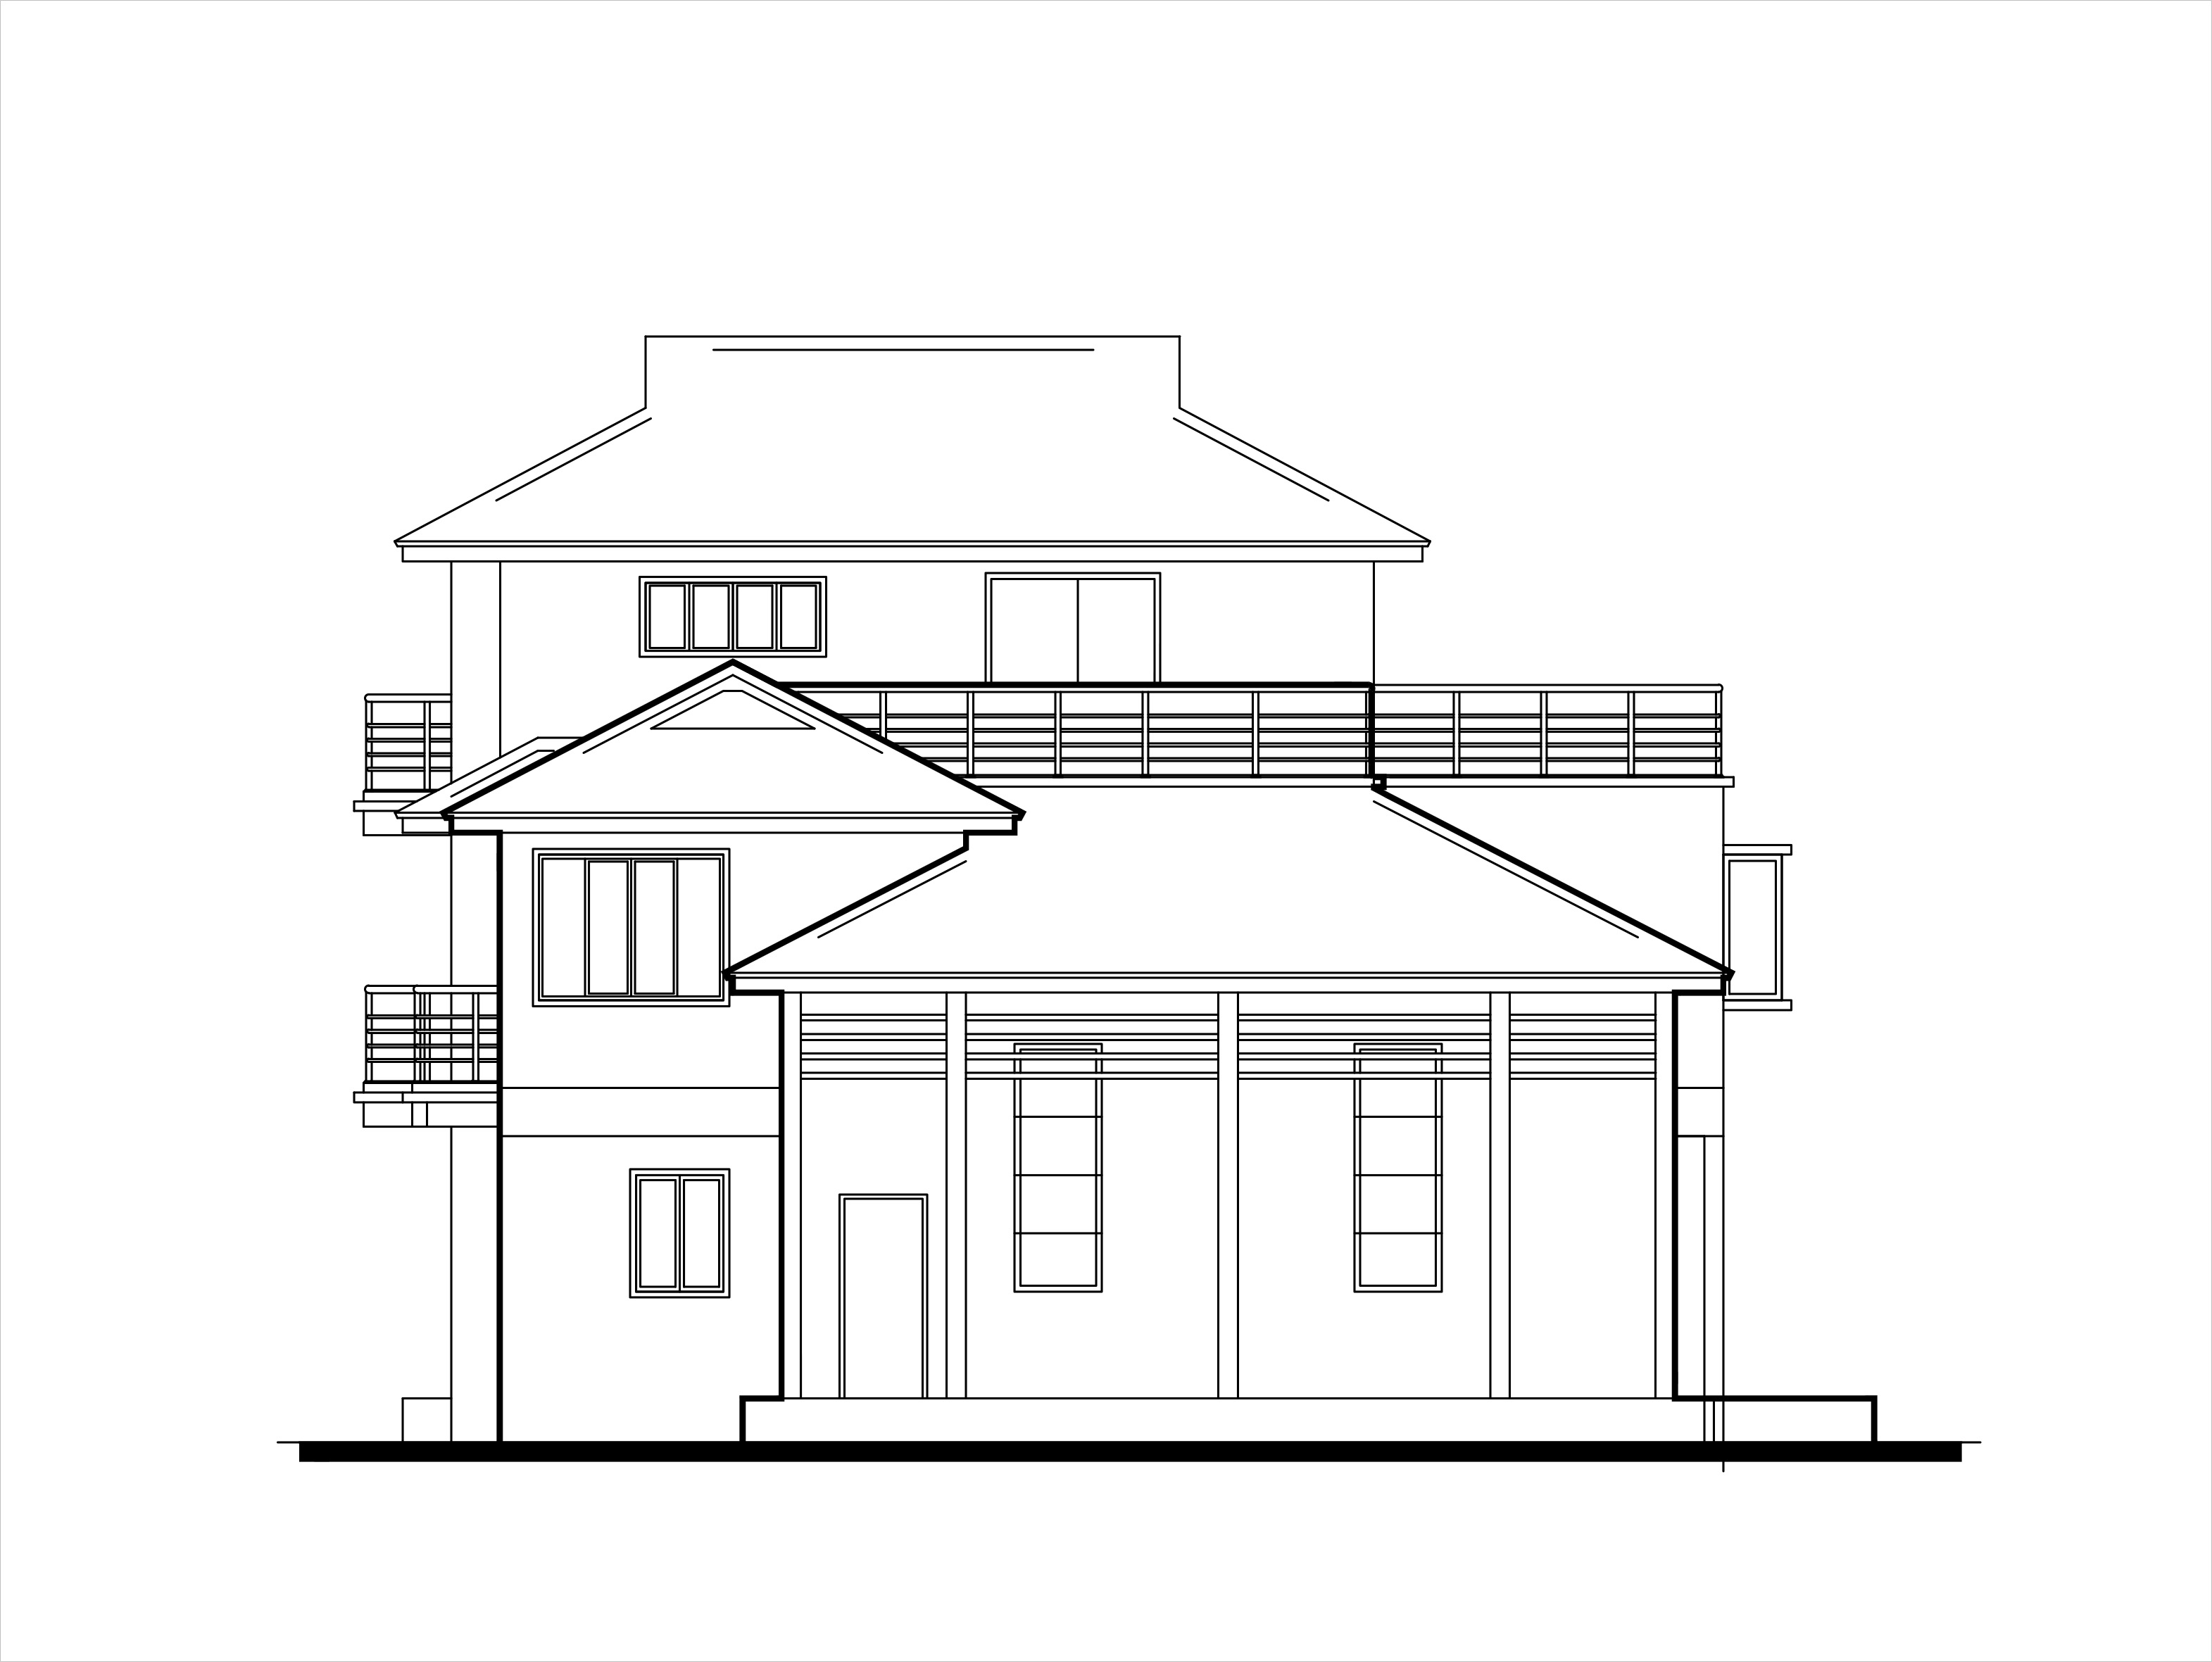 Front Elevation Autocad File Free Download : Double story low cost house plans dwg net cad blocks